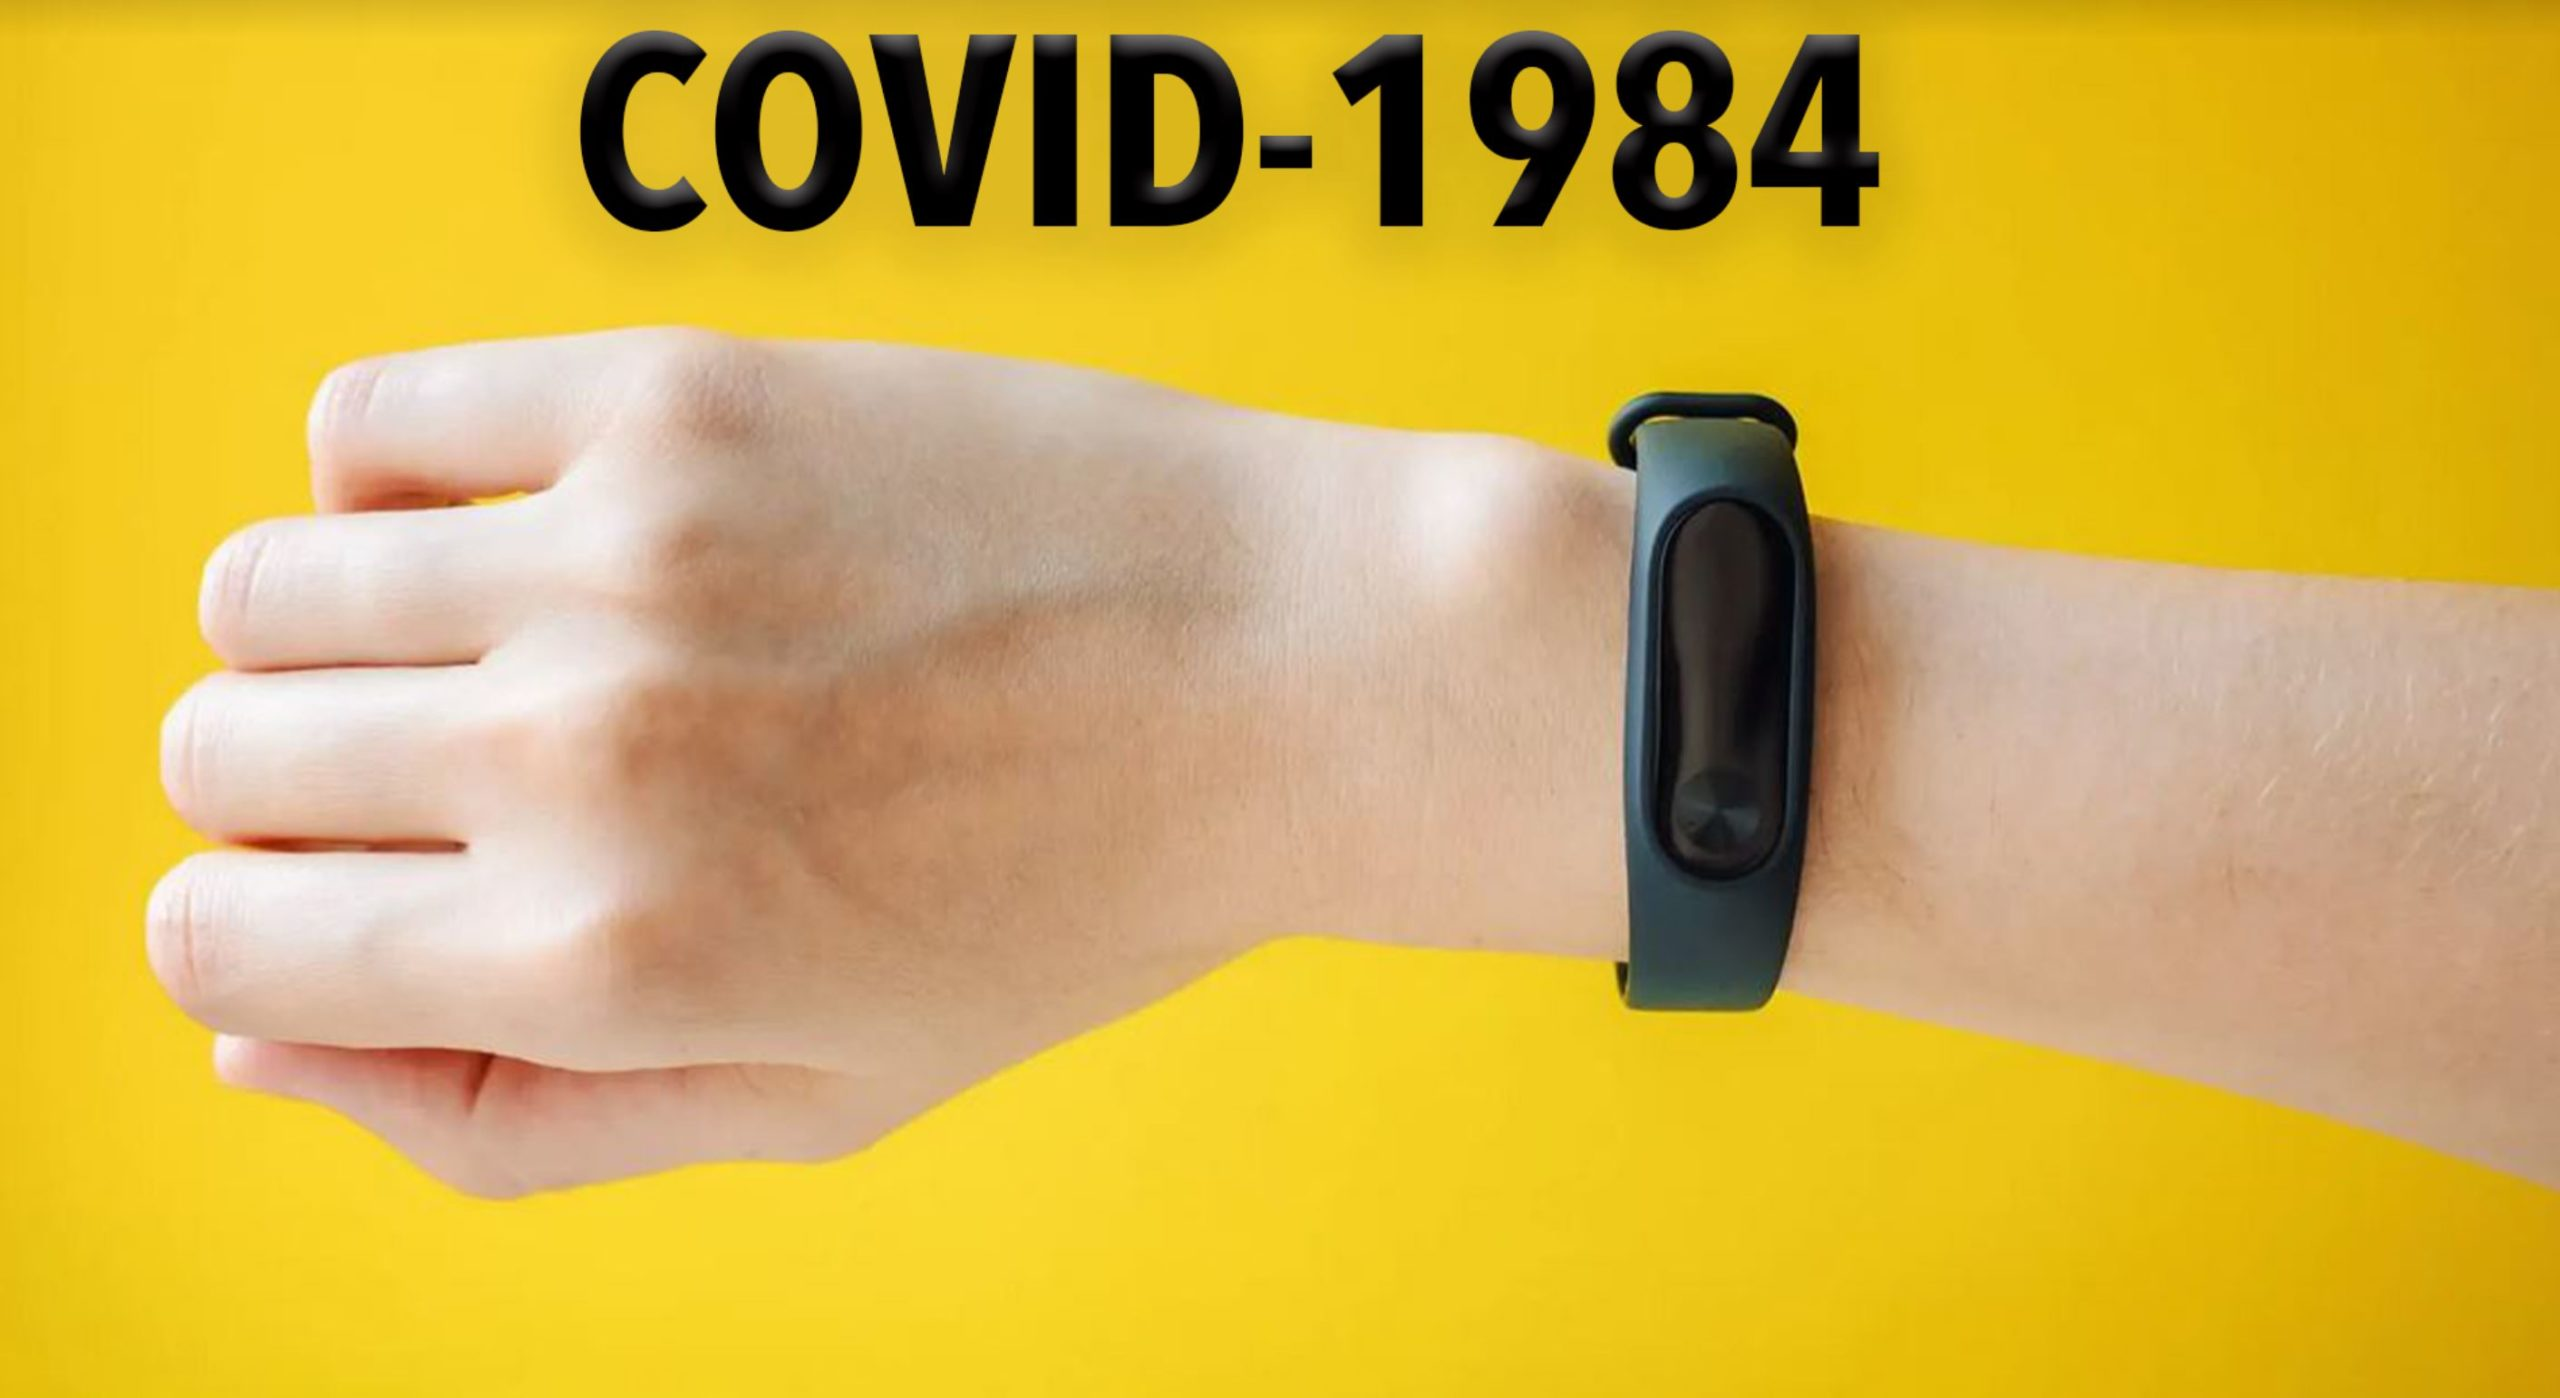 """tourists-visiting-thailand-will-need-to-wear-a-""""smart-band""""-device-for-contact-tracing-–-activist-post"""